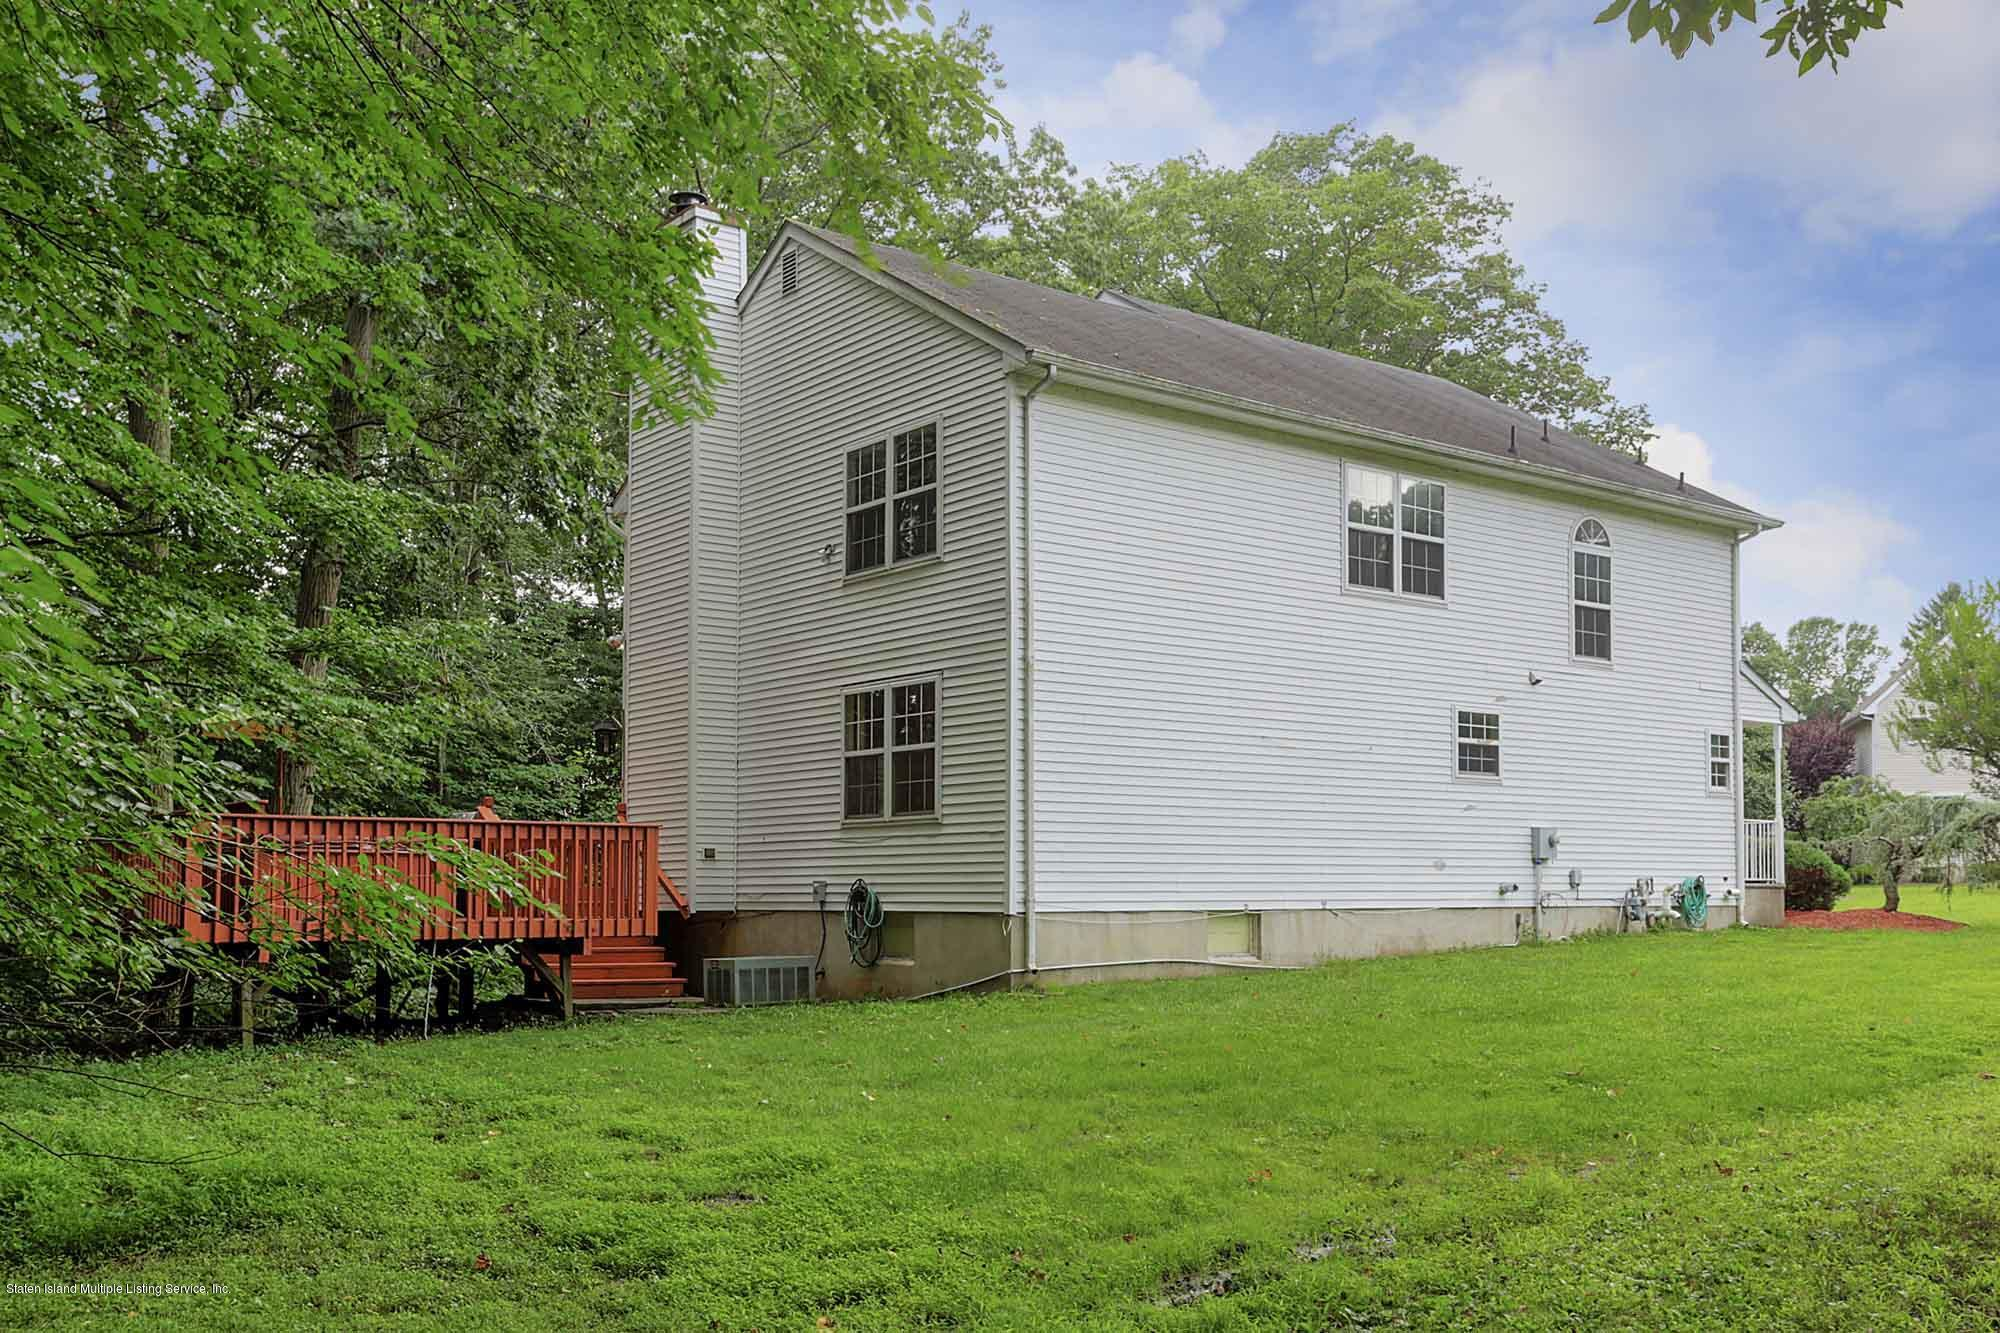 Single Family - Detached 7 Crestwood Road  Matawan, NY 07747, MLS-1126949-11